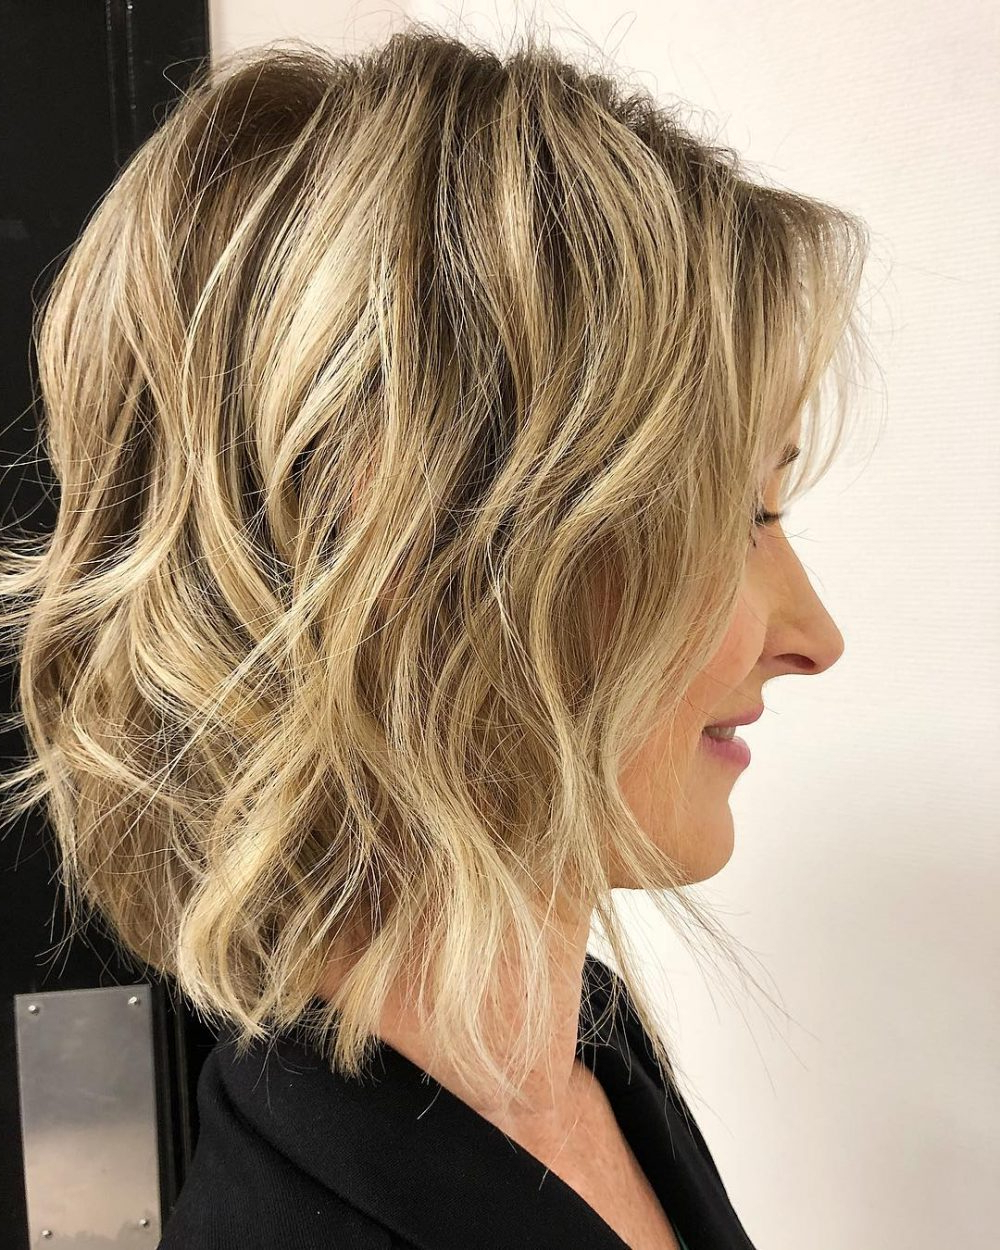 43 Perfect Short Hairstyles For Fine Hair In 2018 With Regard To Short Wispy Hairstyles For Fine Locks (View 2 of 20)